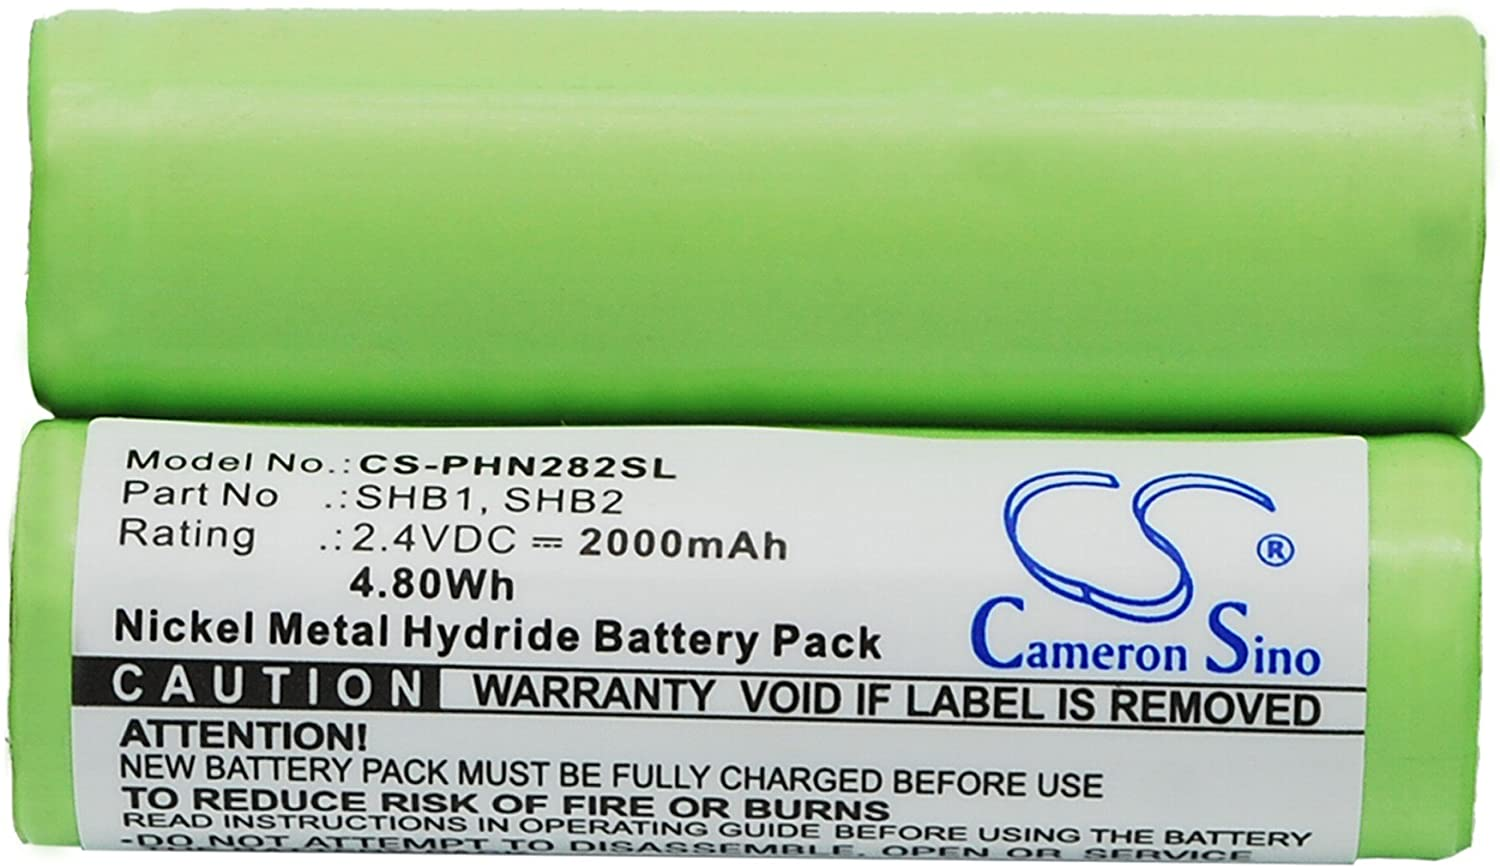 Cameron Sino Rechargeble Battery for Philips 7885XL